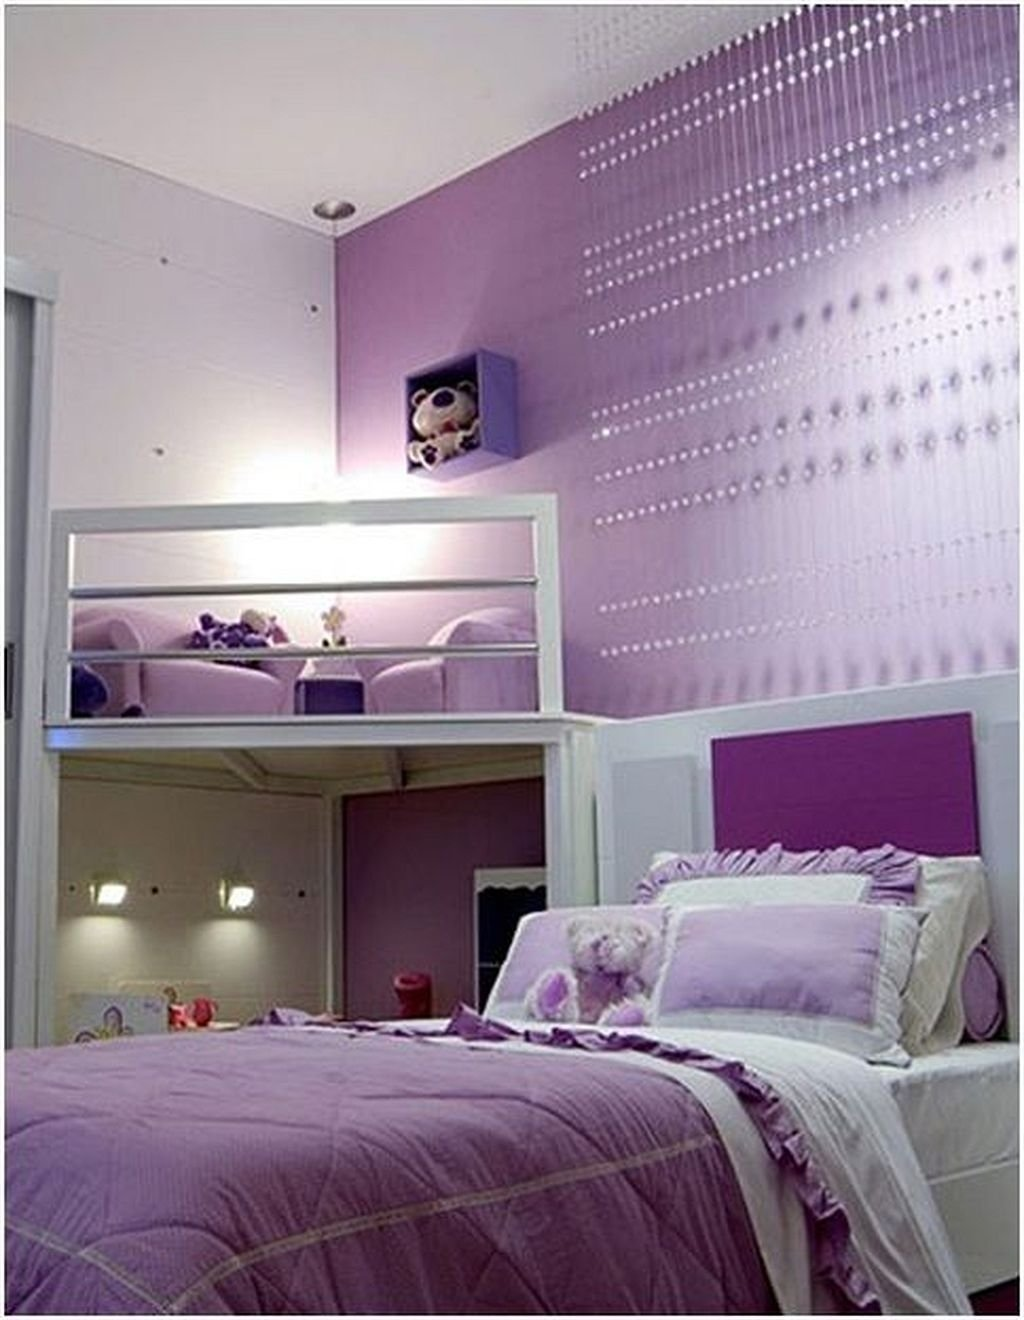 10 Perfect Rooms For Teenage Girls Ideas 70 teen girl bedroom design ideas bedrooms teen and nice 2020